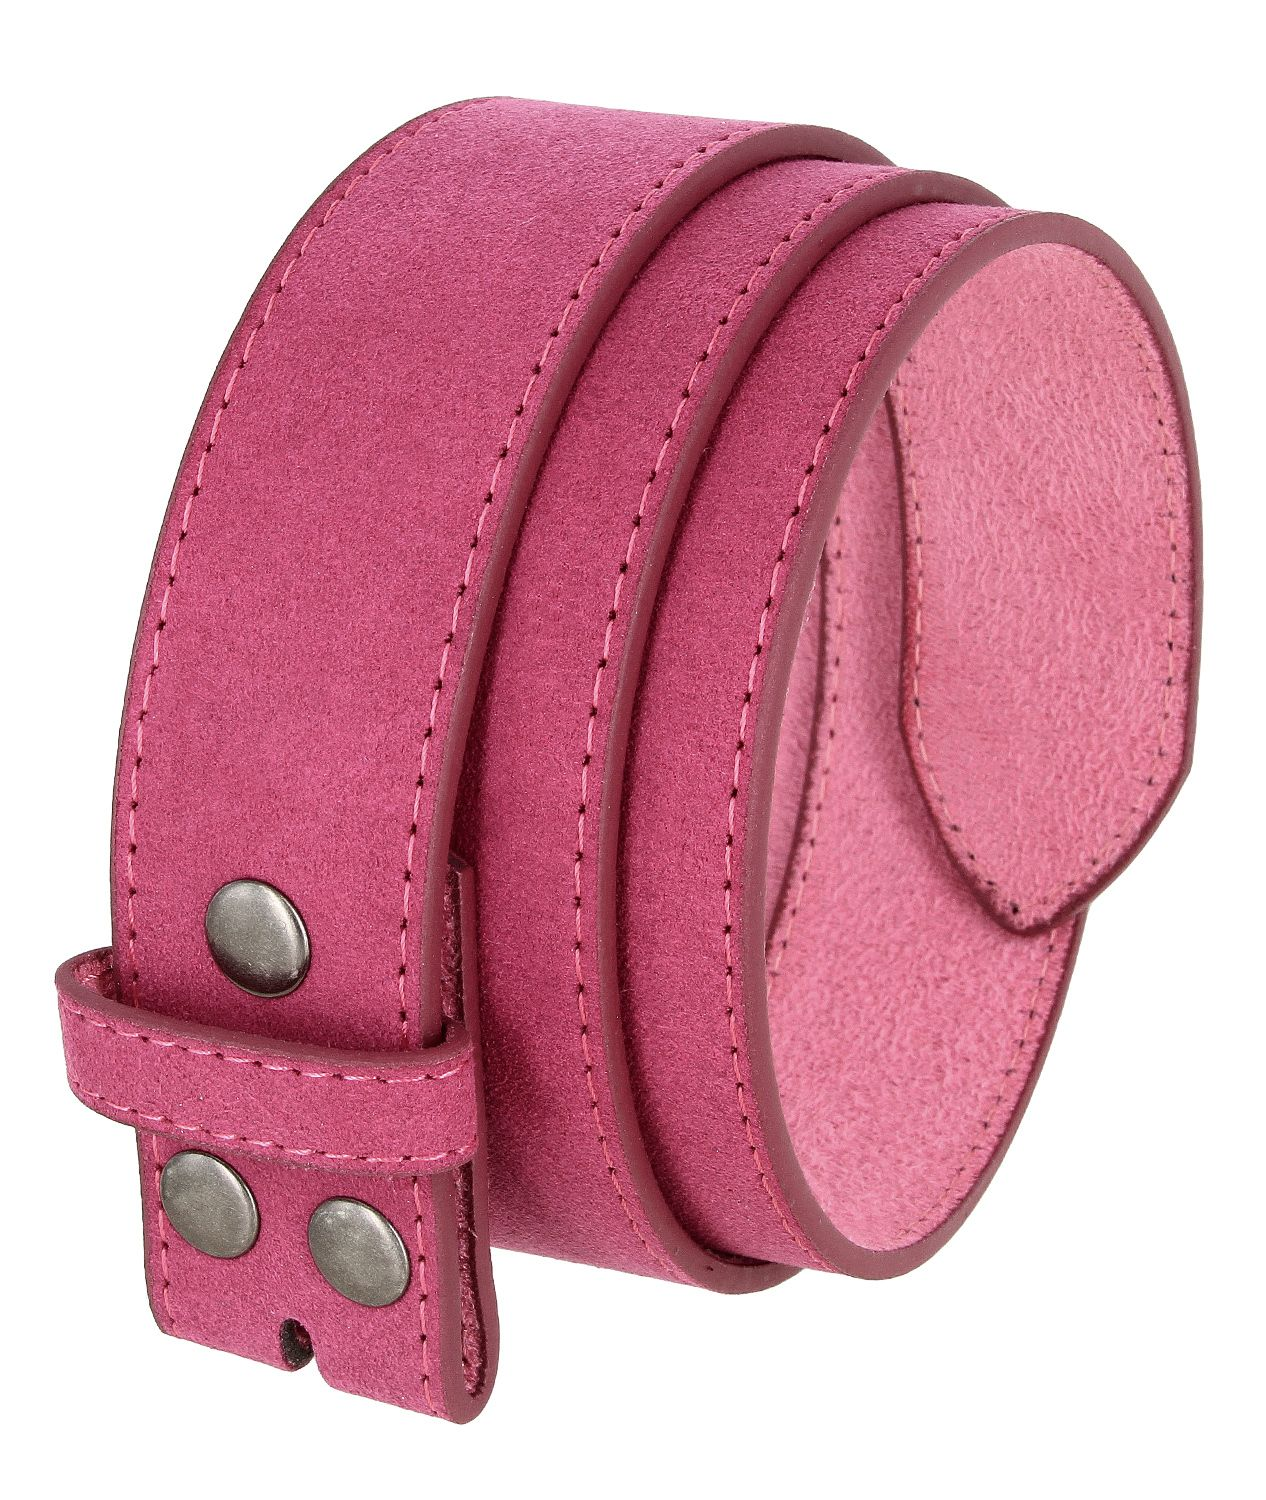 Casual Suede Leather Belt Strap for Men 1 1//2 Wide